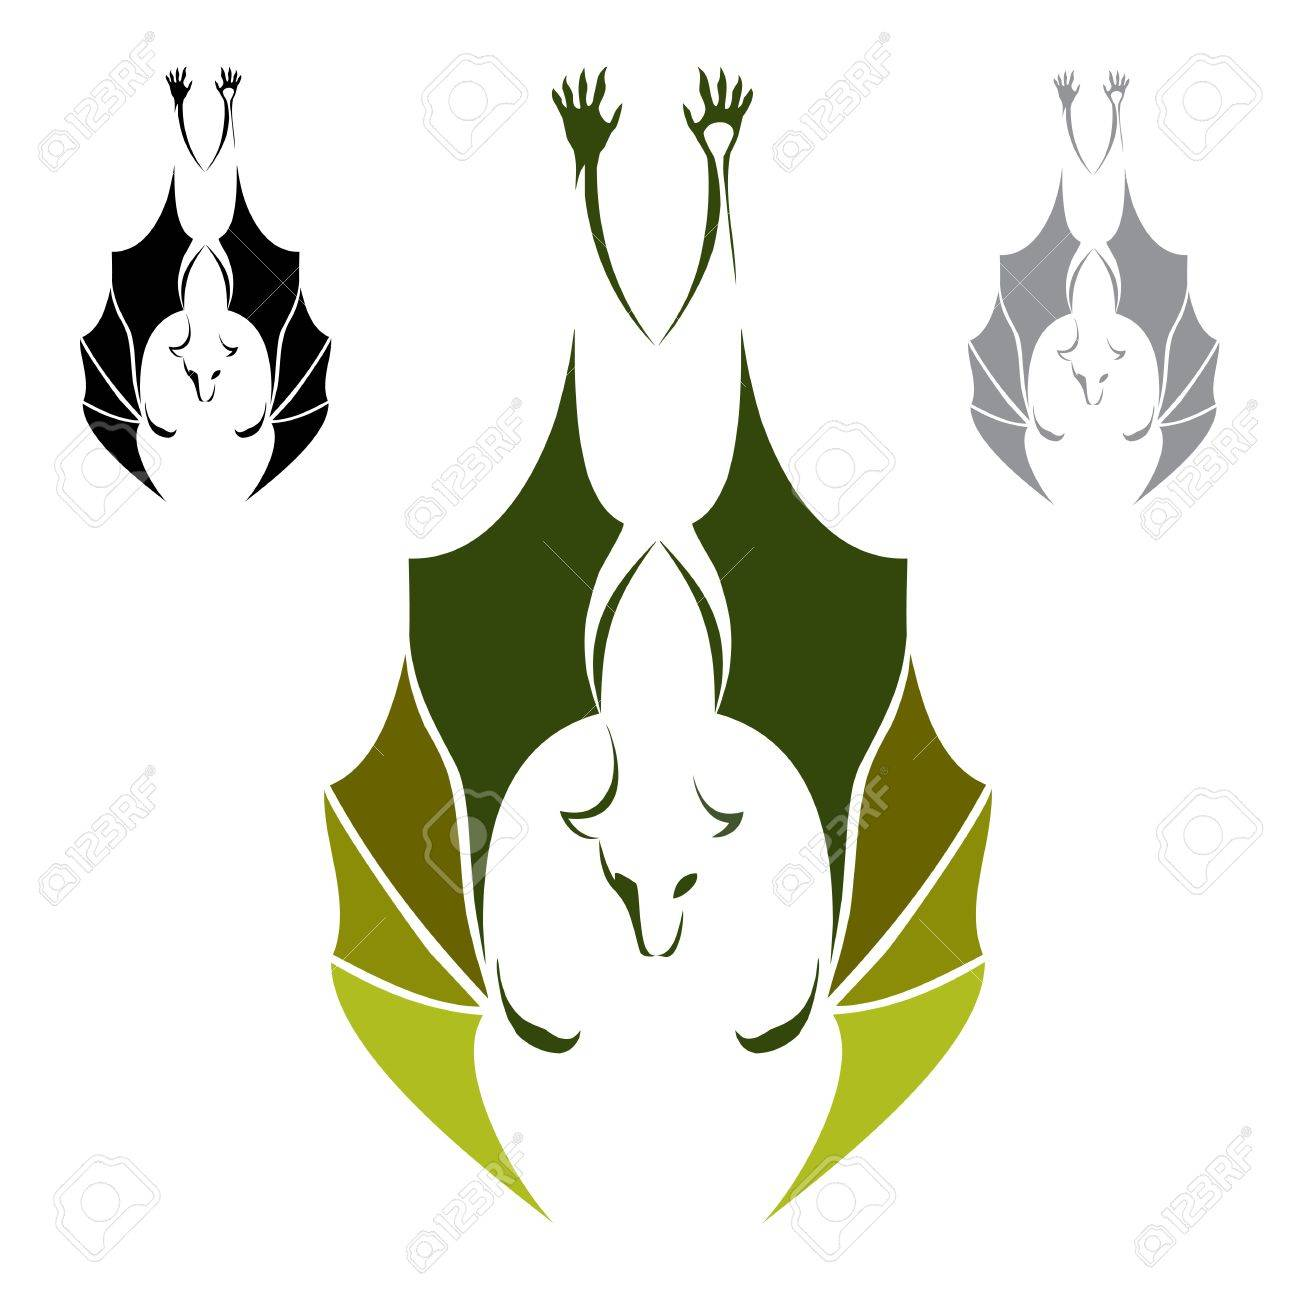 Three bats hanging upside down on a white background royalty free three bats hanging upside down on a white background stock vector 16361718 buycottarizona